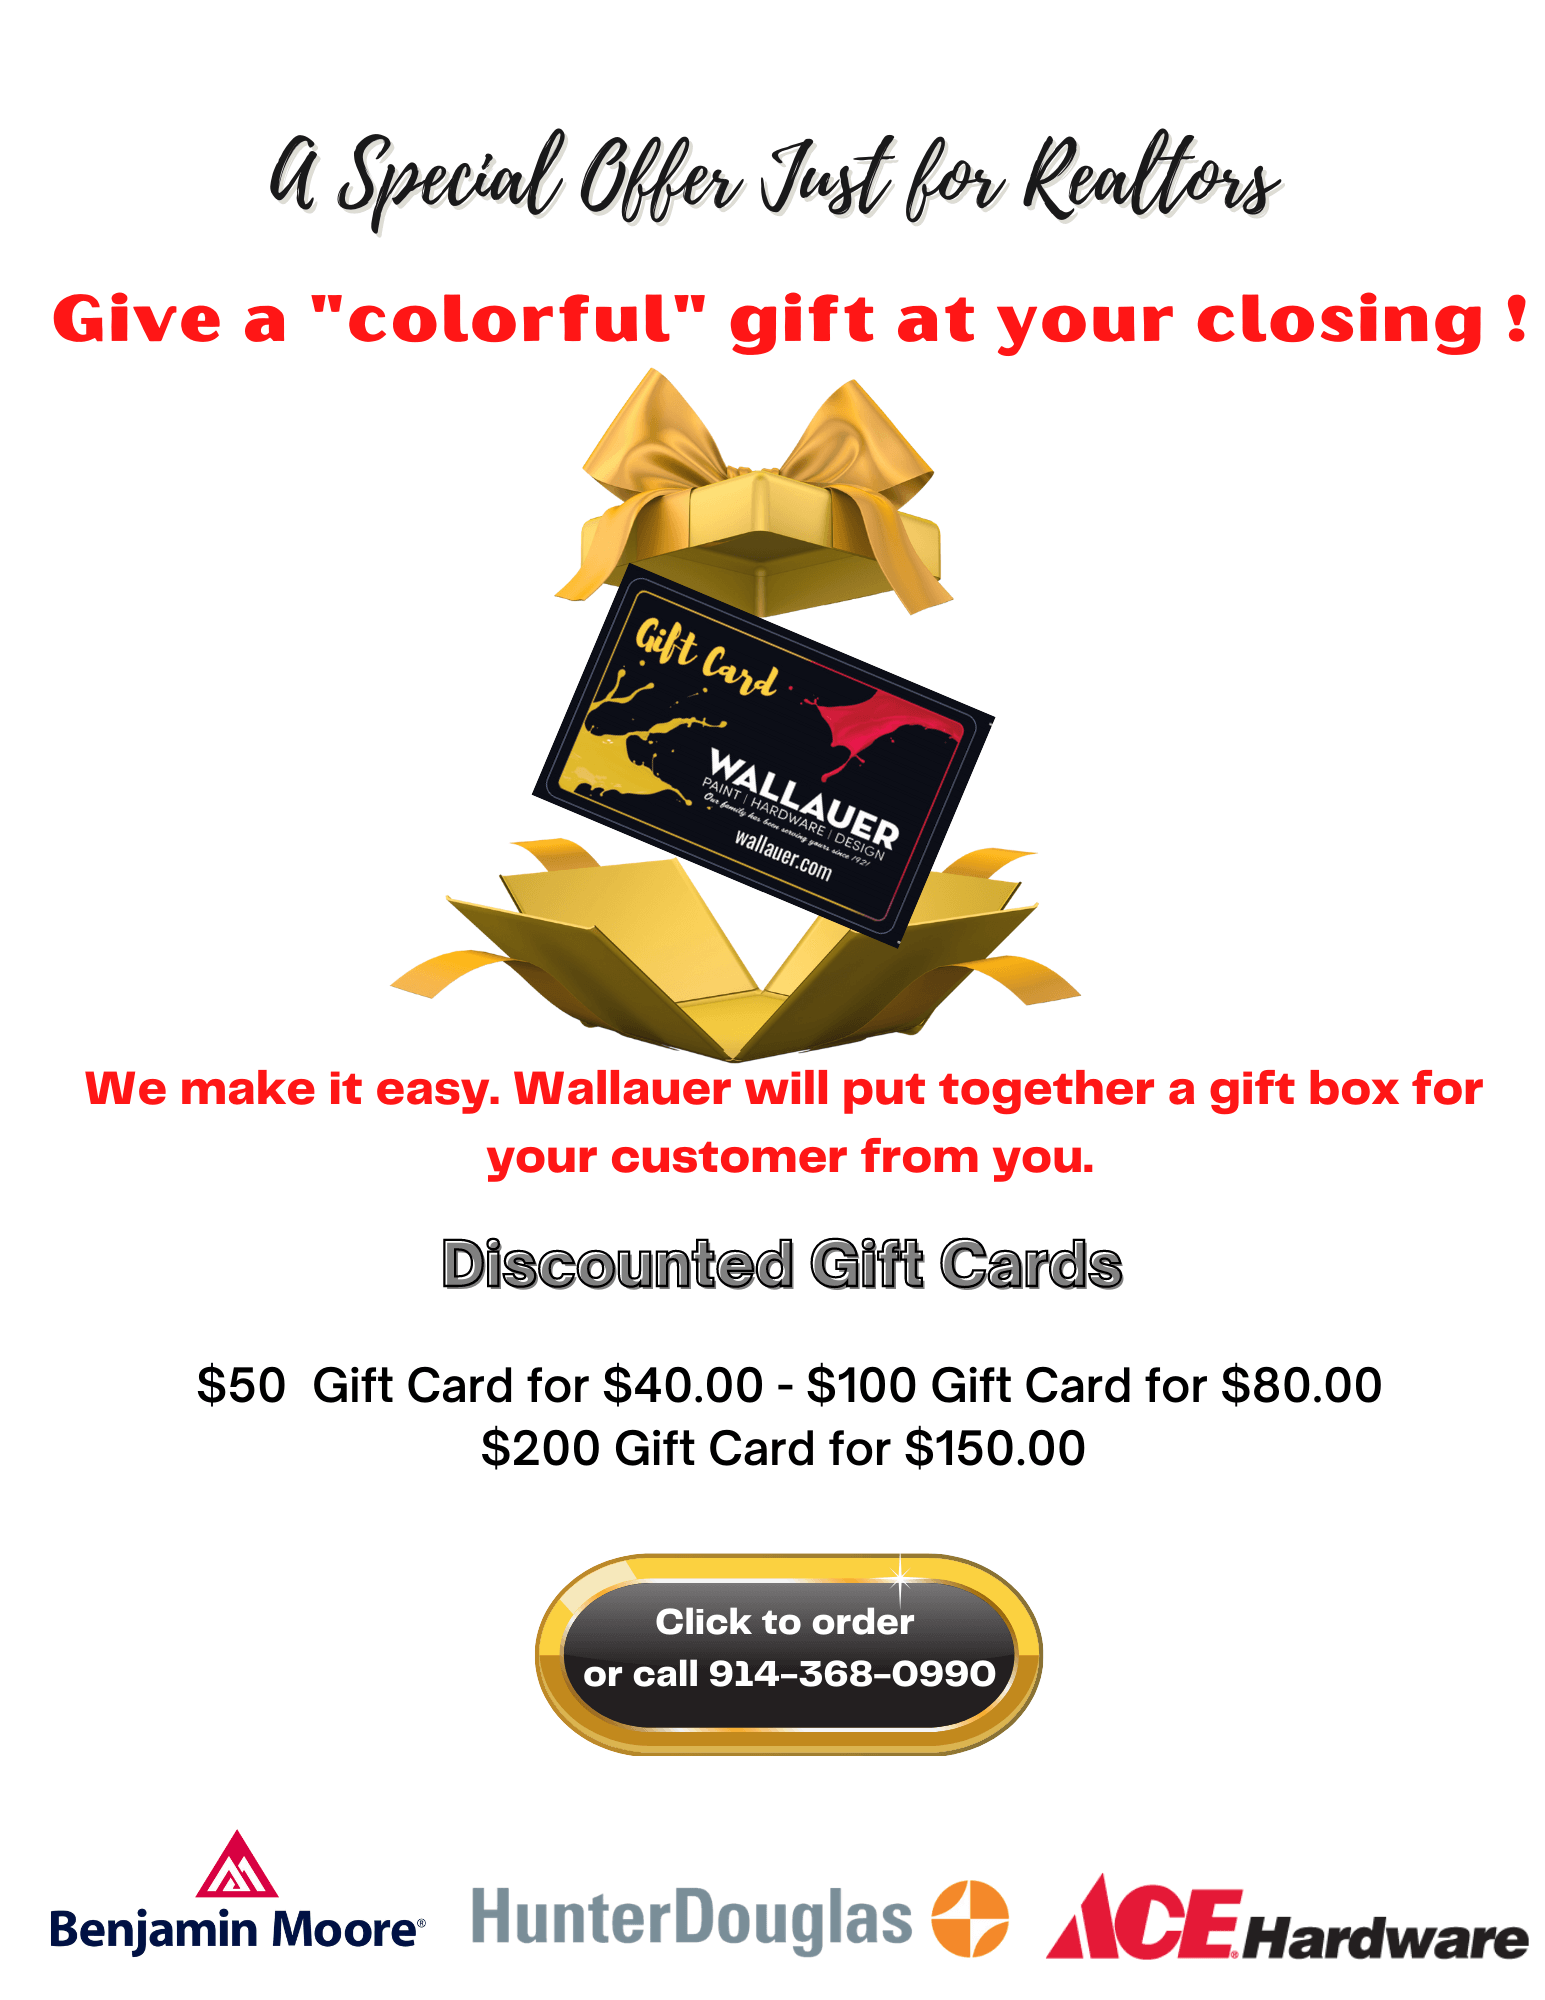 Web page_Give a colorful gift at your closing-2